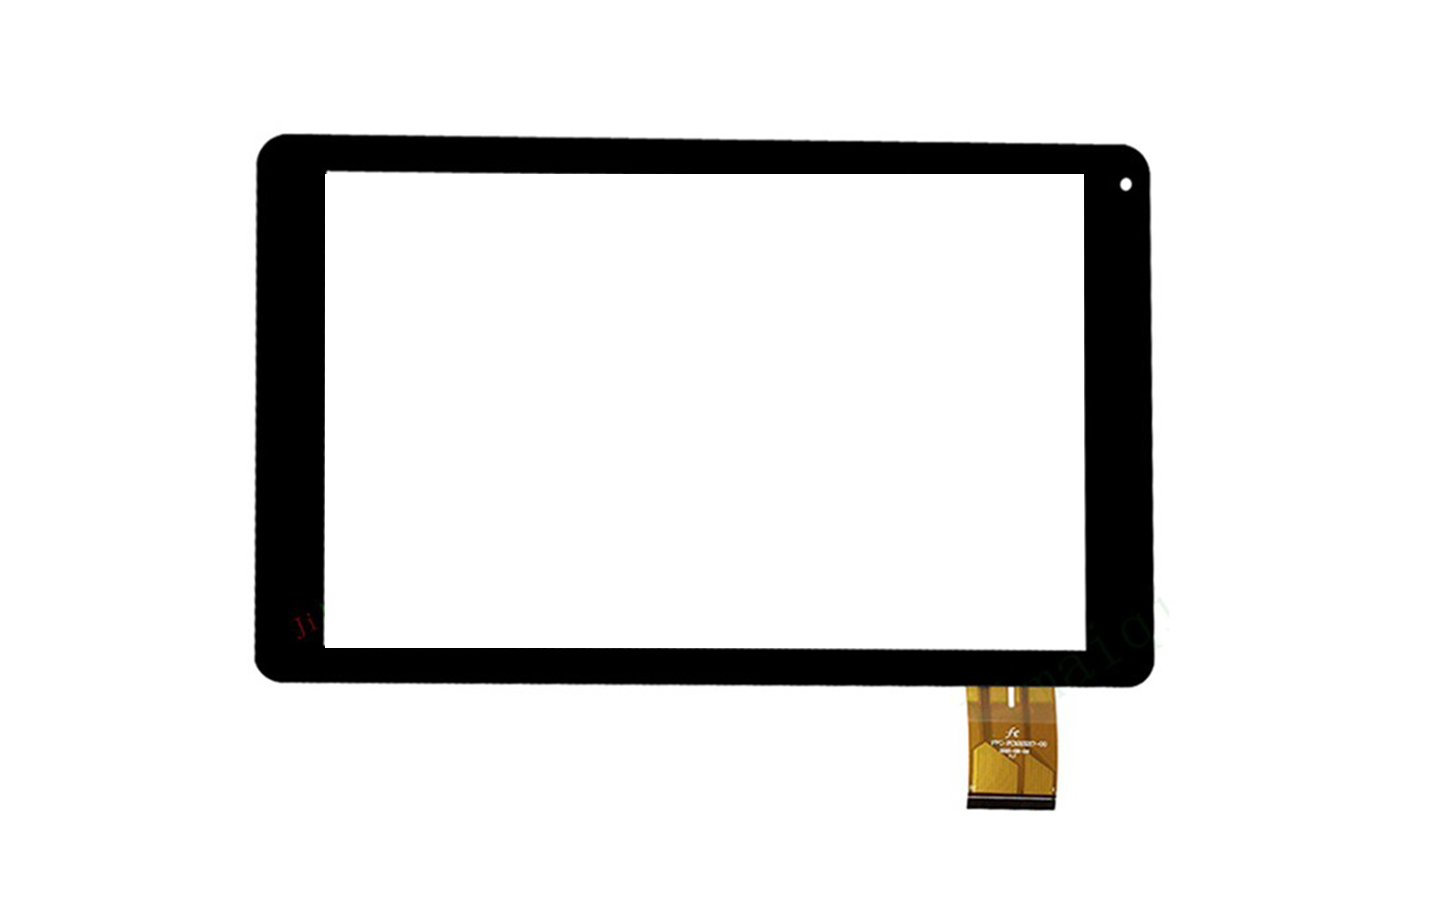 DIGITIZER TABLET ESTAR MID 1258G 10″ Or Turbo Di 1052 BLACK